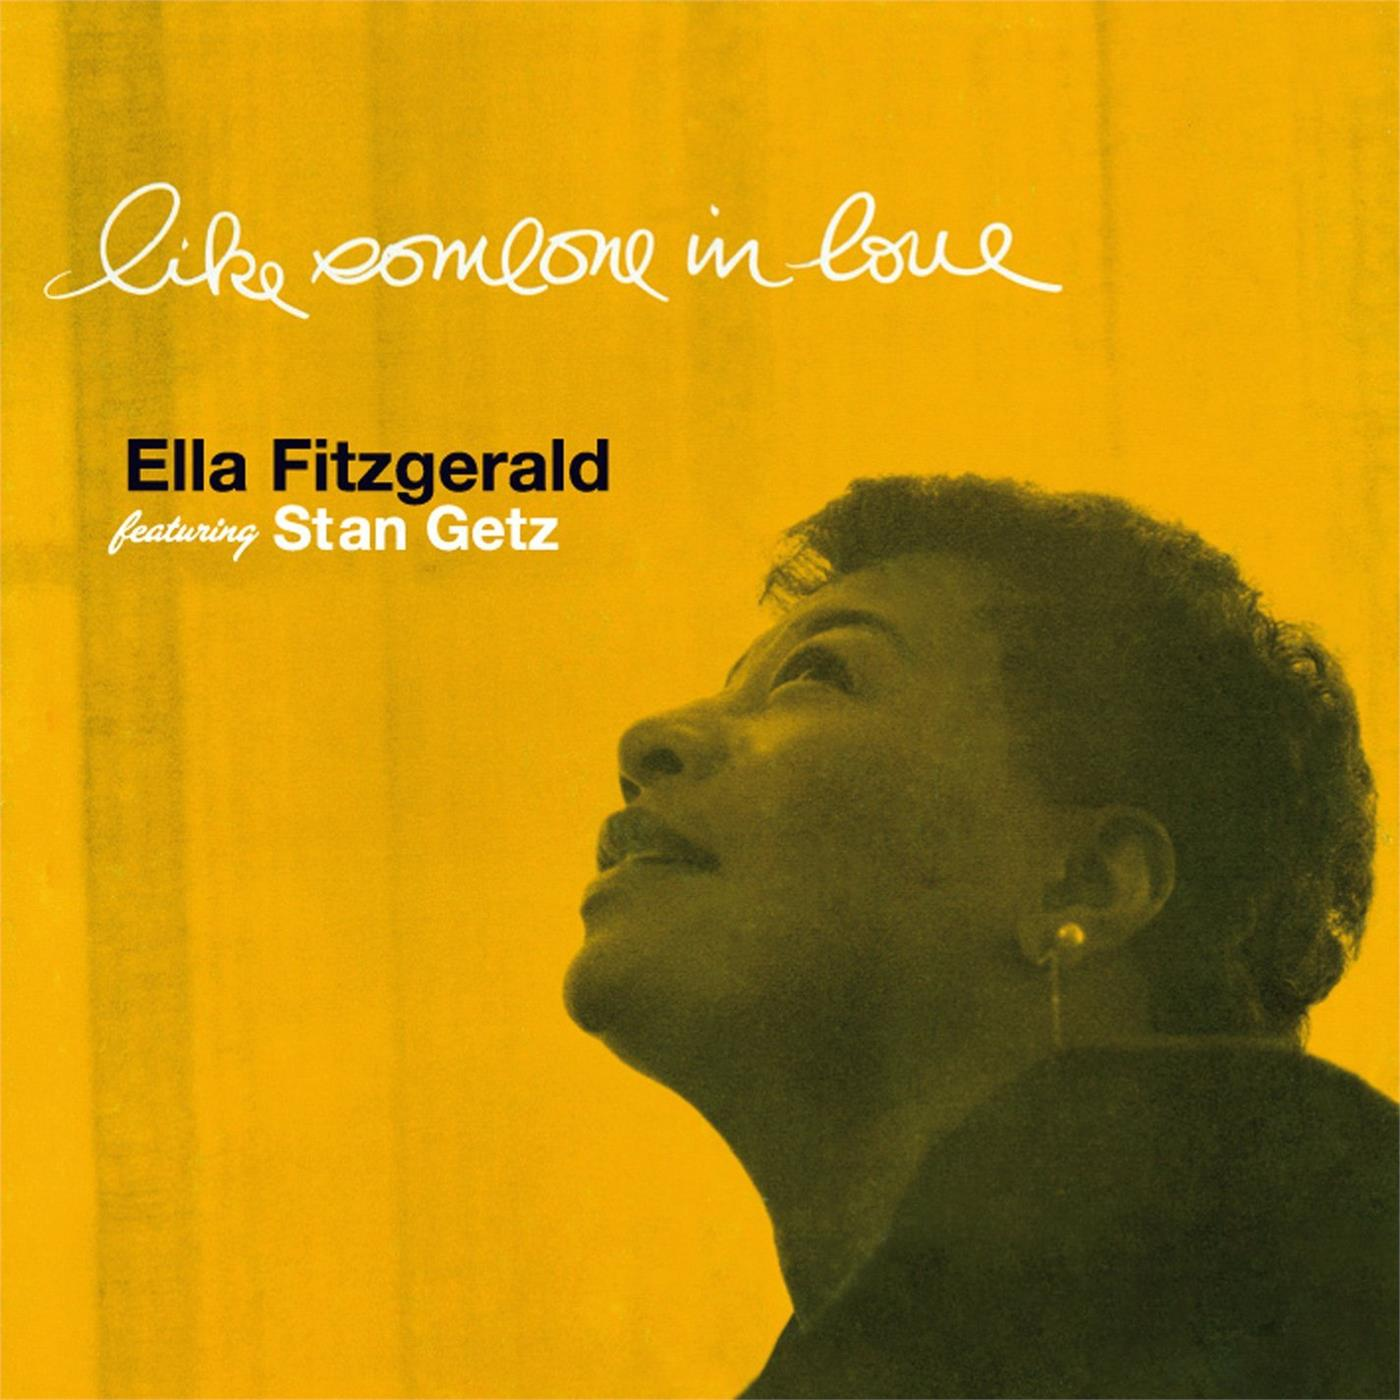 VXLAP4004 Analogue Productions  Ella Fitzgerald Like Someone in Love (2LP)